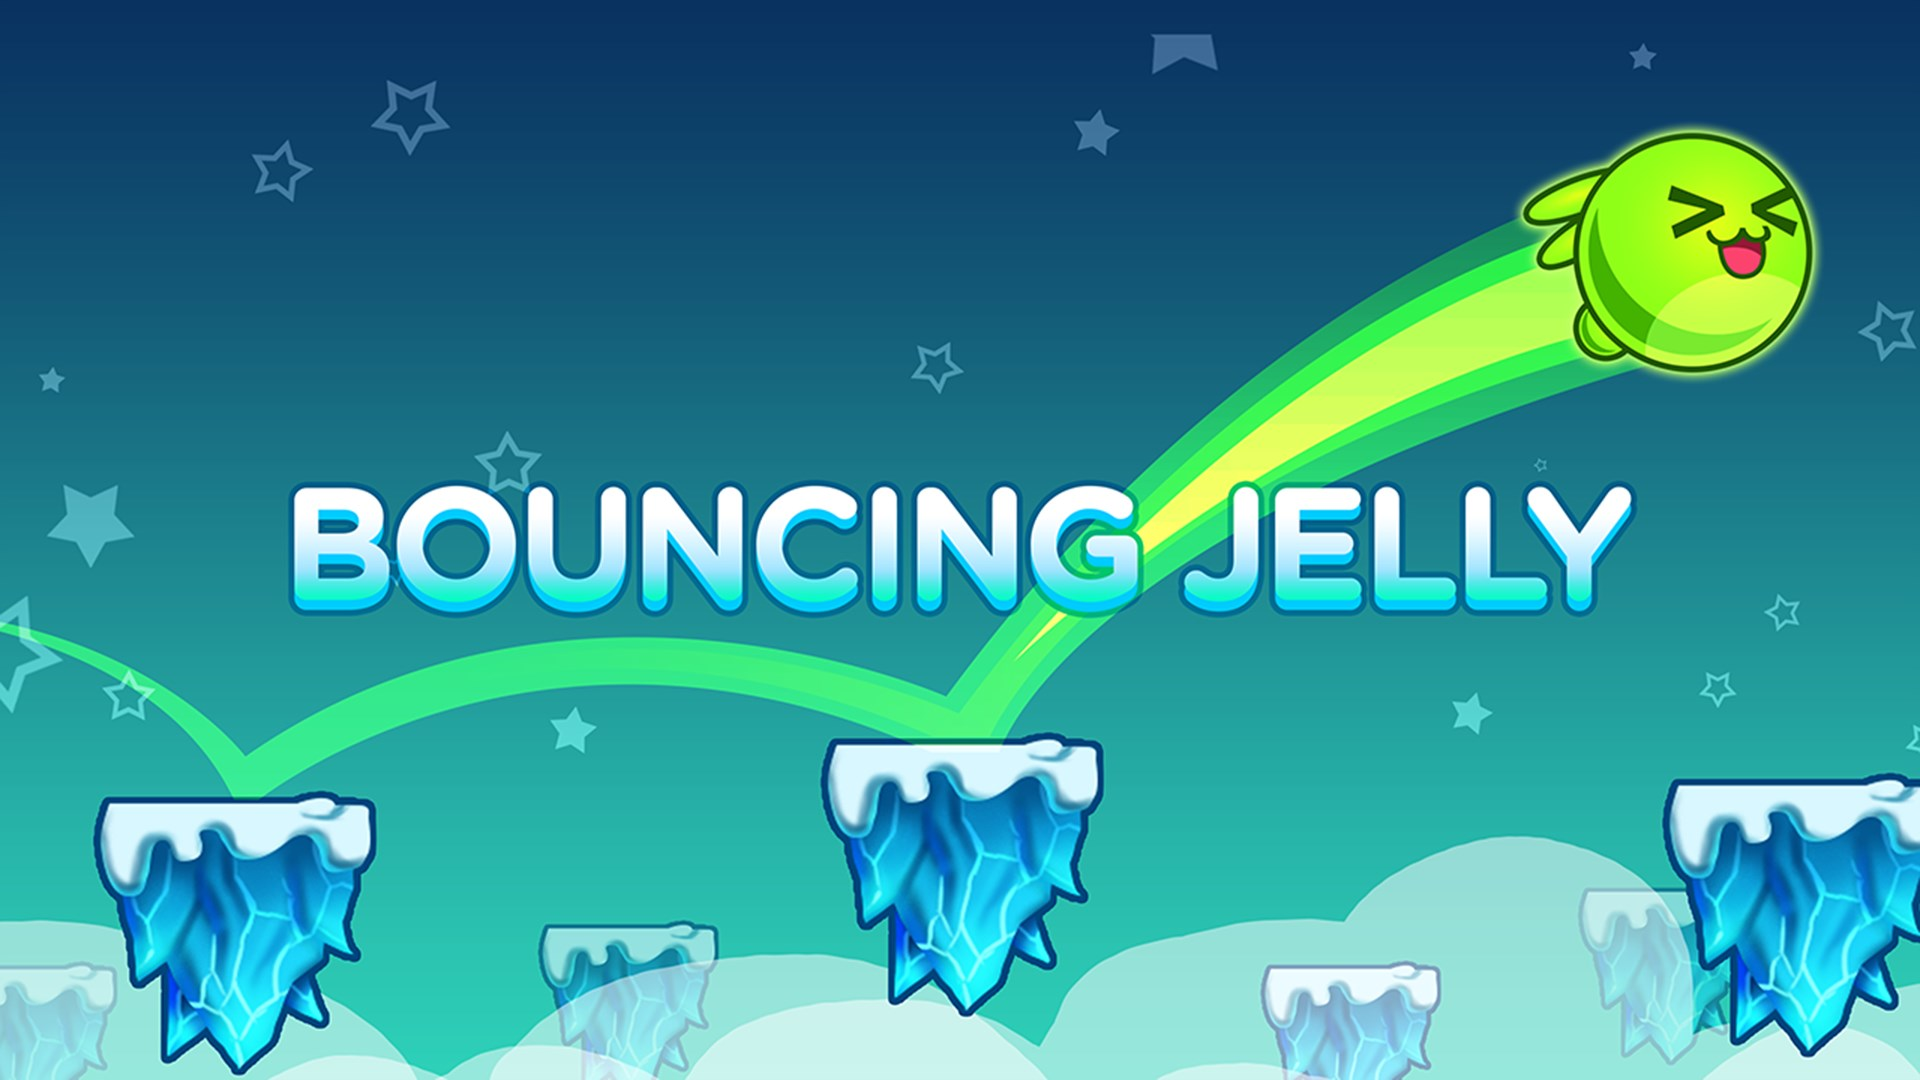 Get Bouncing Jelly: Bounce and Jump - Microsoft Store